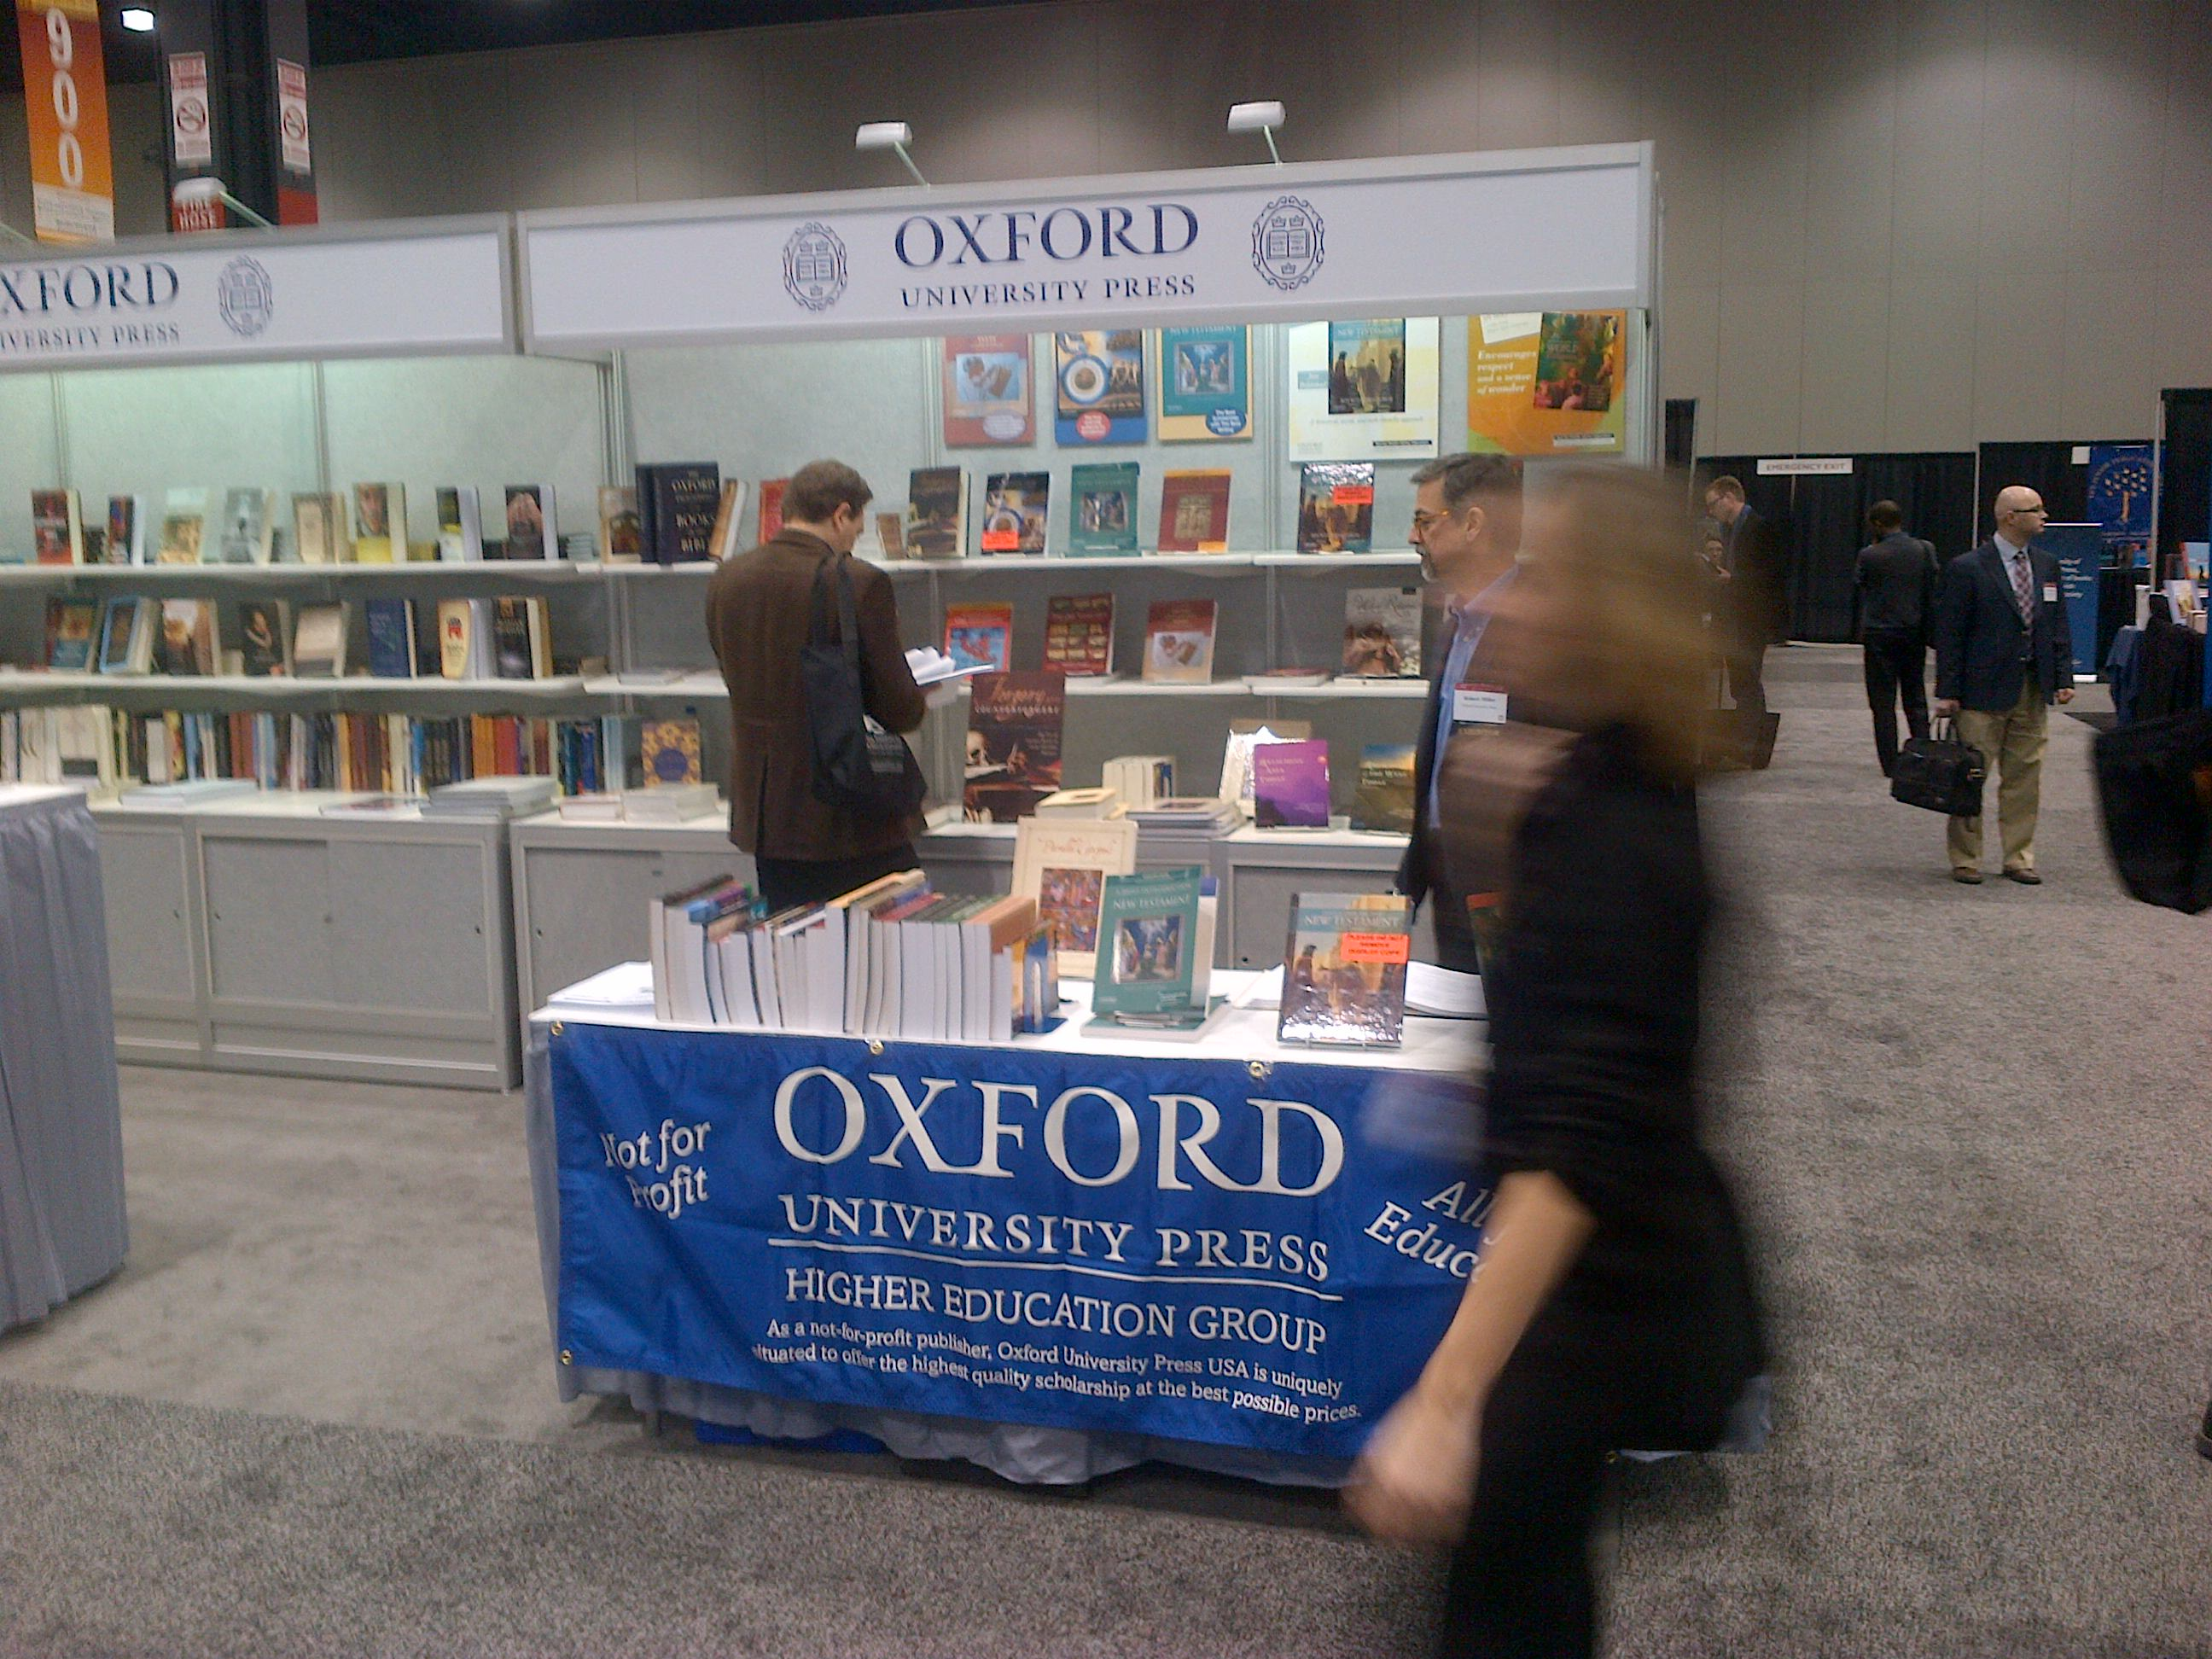 Oxford's booth from American Academy of Religion/Society for Biblical Literature 2012. Photo courtesy of Theo Calderara